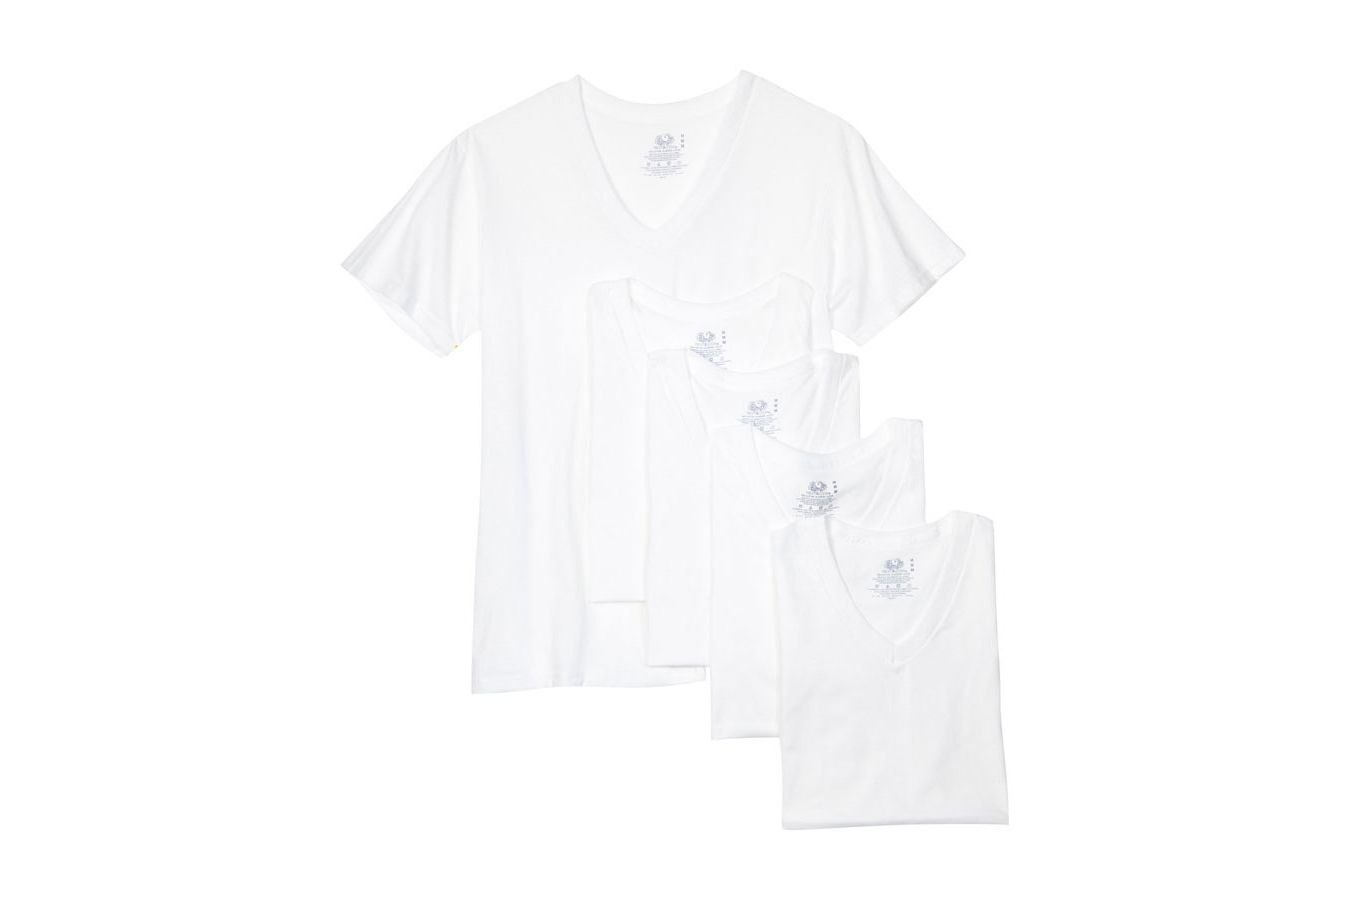 a428431ae1c2 The 16 Best White T-shirts for Women 2019